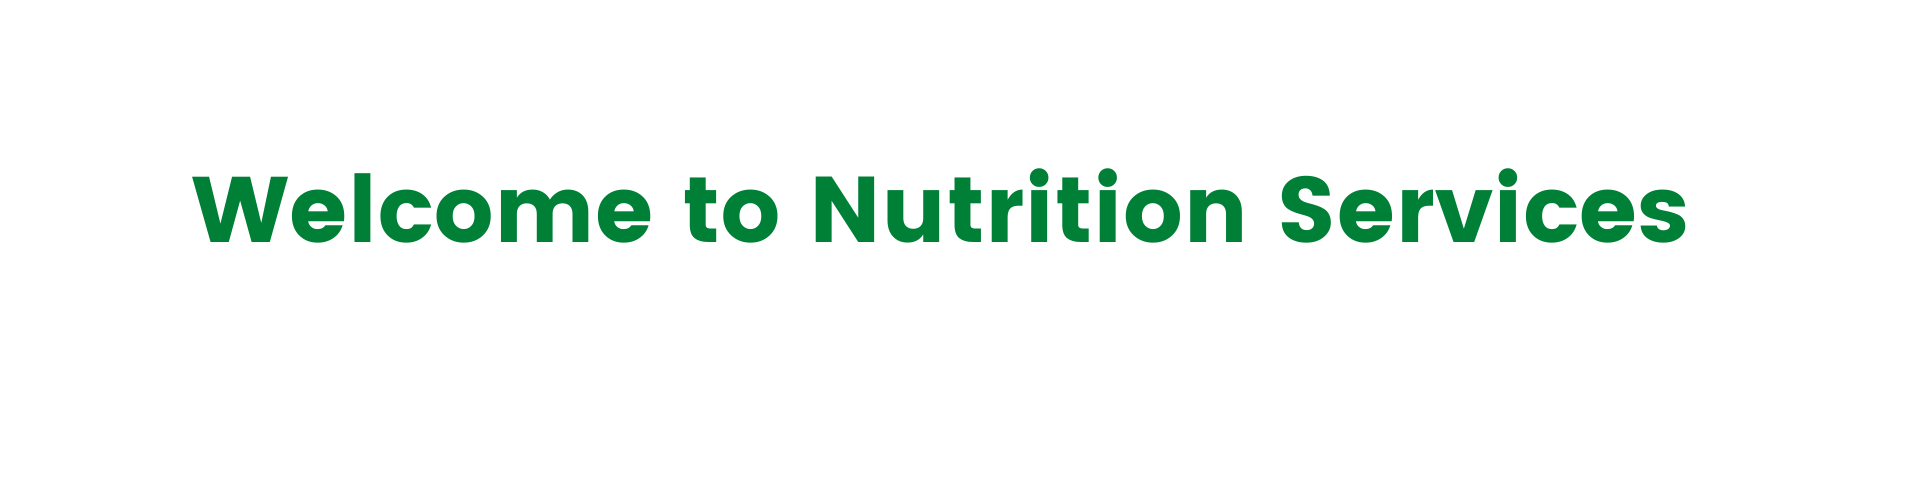 Welcome to Nutrition Services (1).png